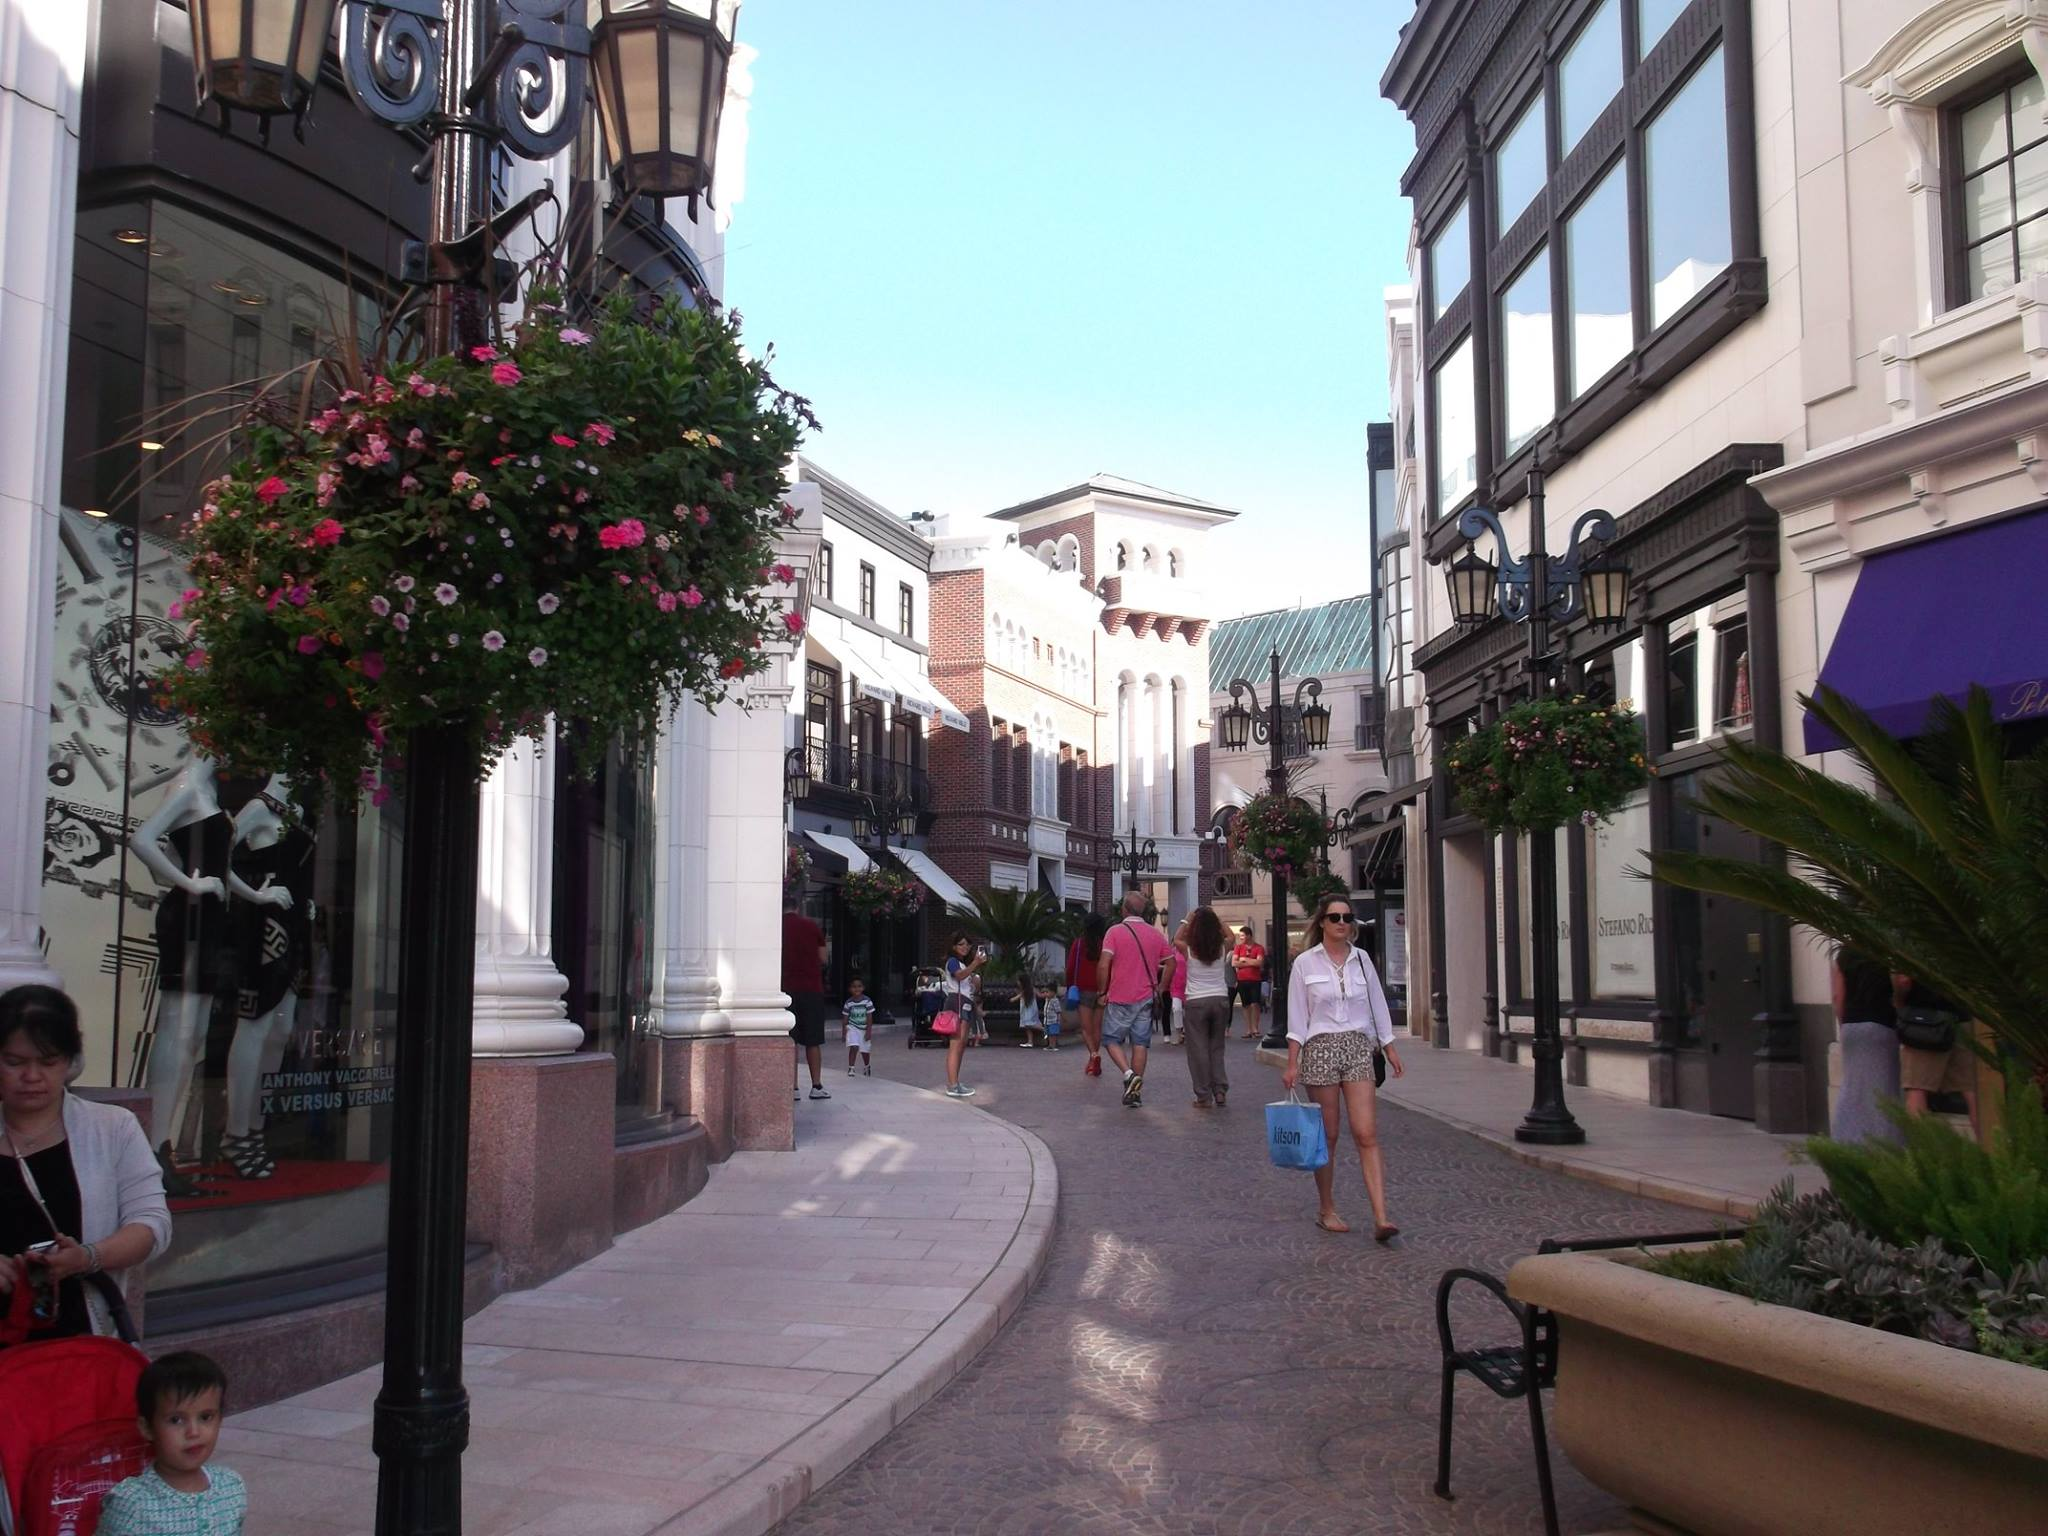 Der rodeo drive in beverly hills - Eleganter einrichtungsstil luxus beverly hills ...